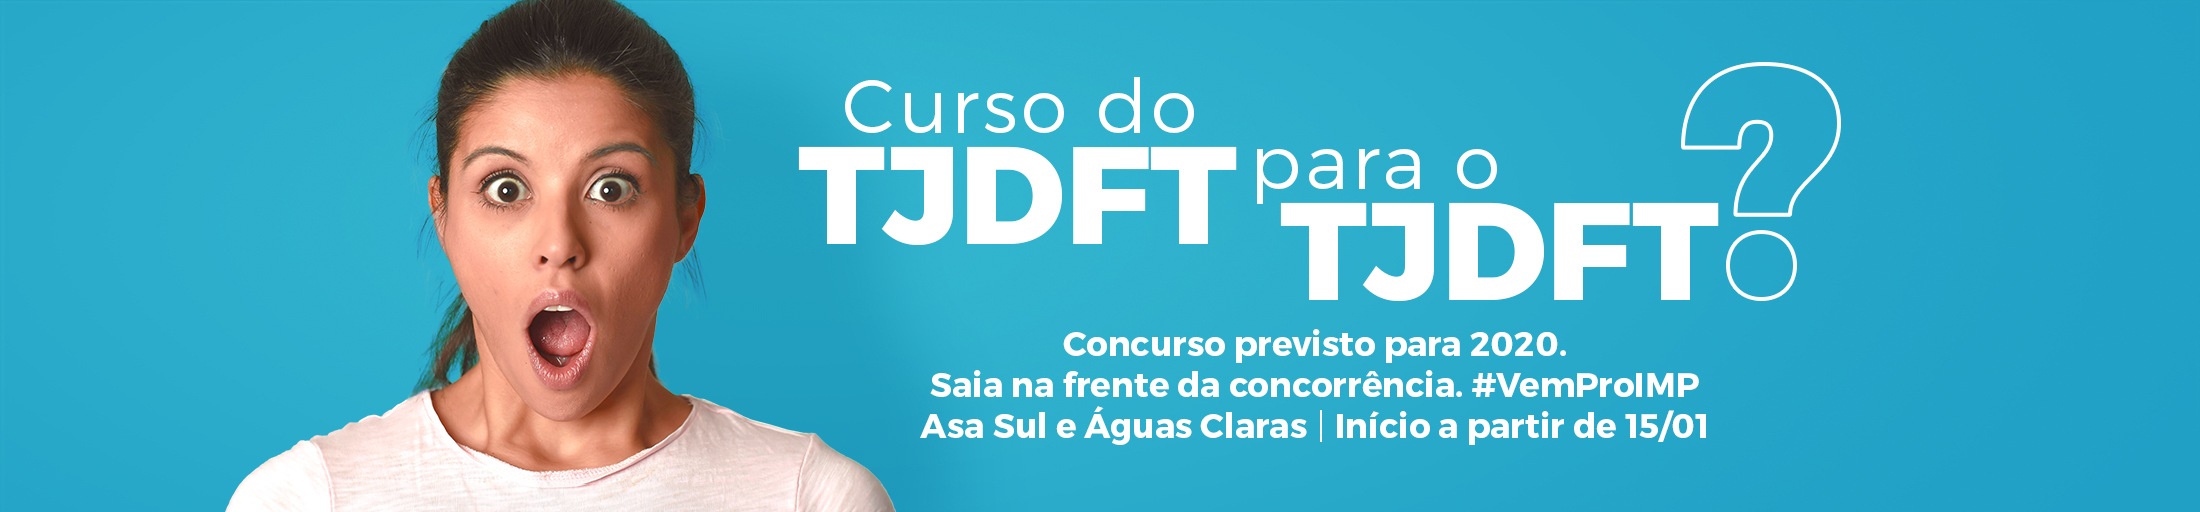 BANNER_SITE_VOLTA_AS_AULAS_2020_TJDFT